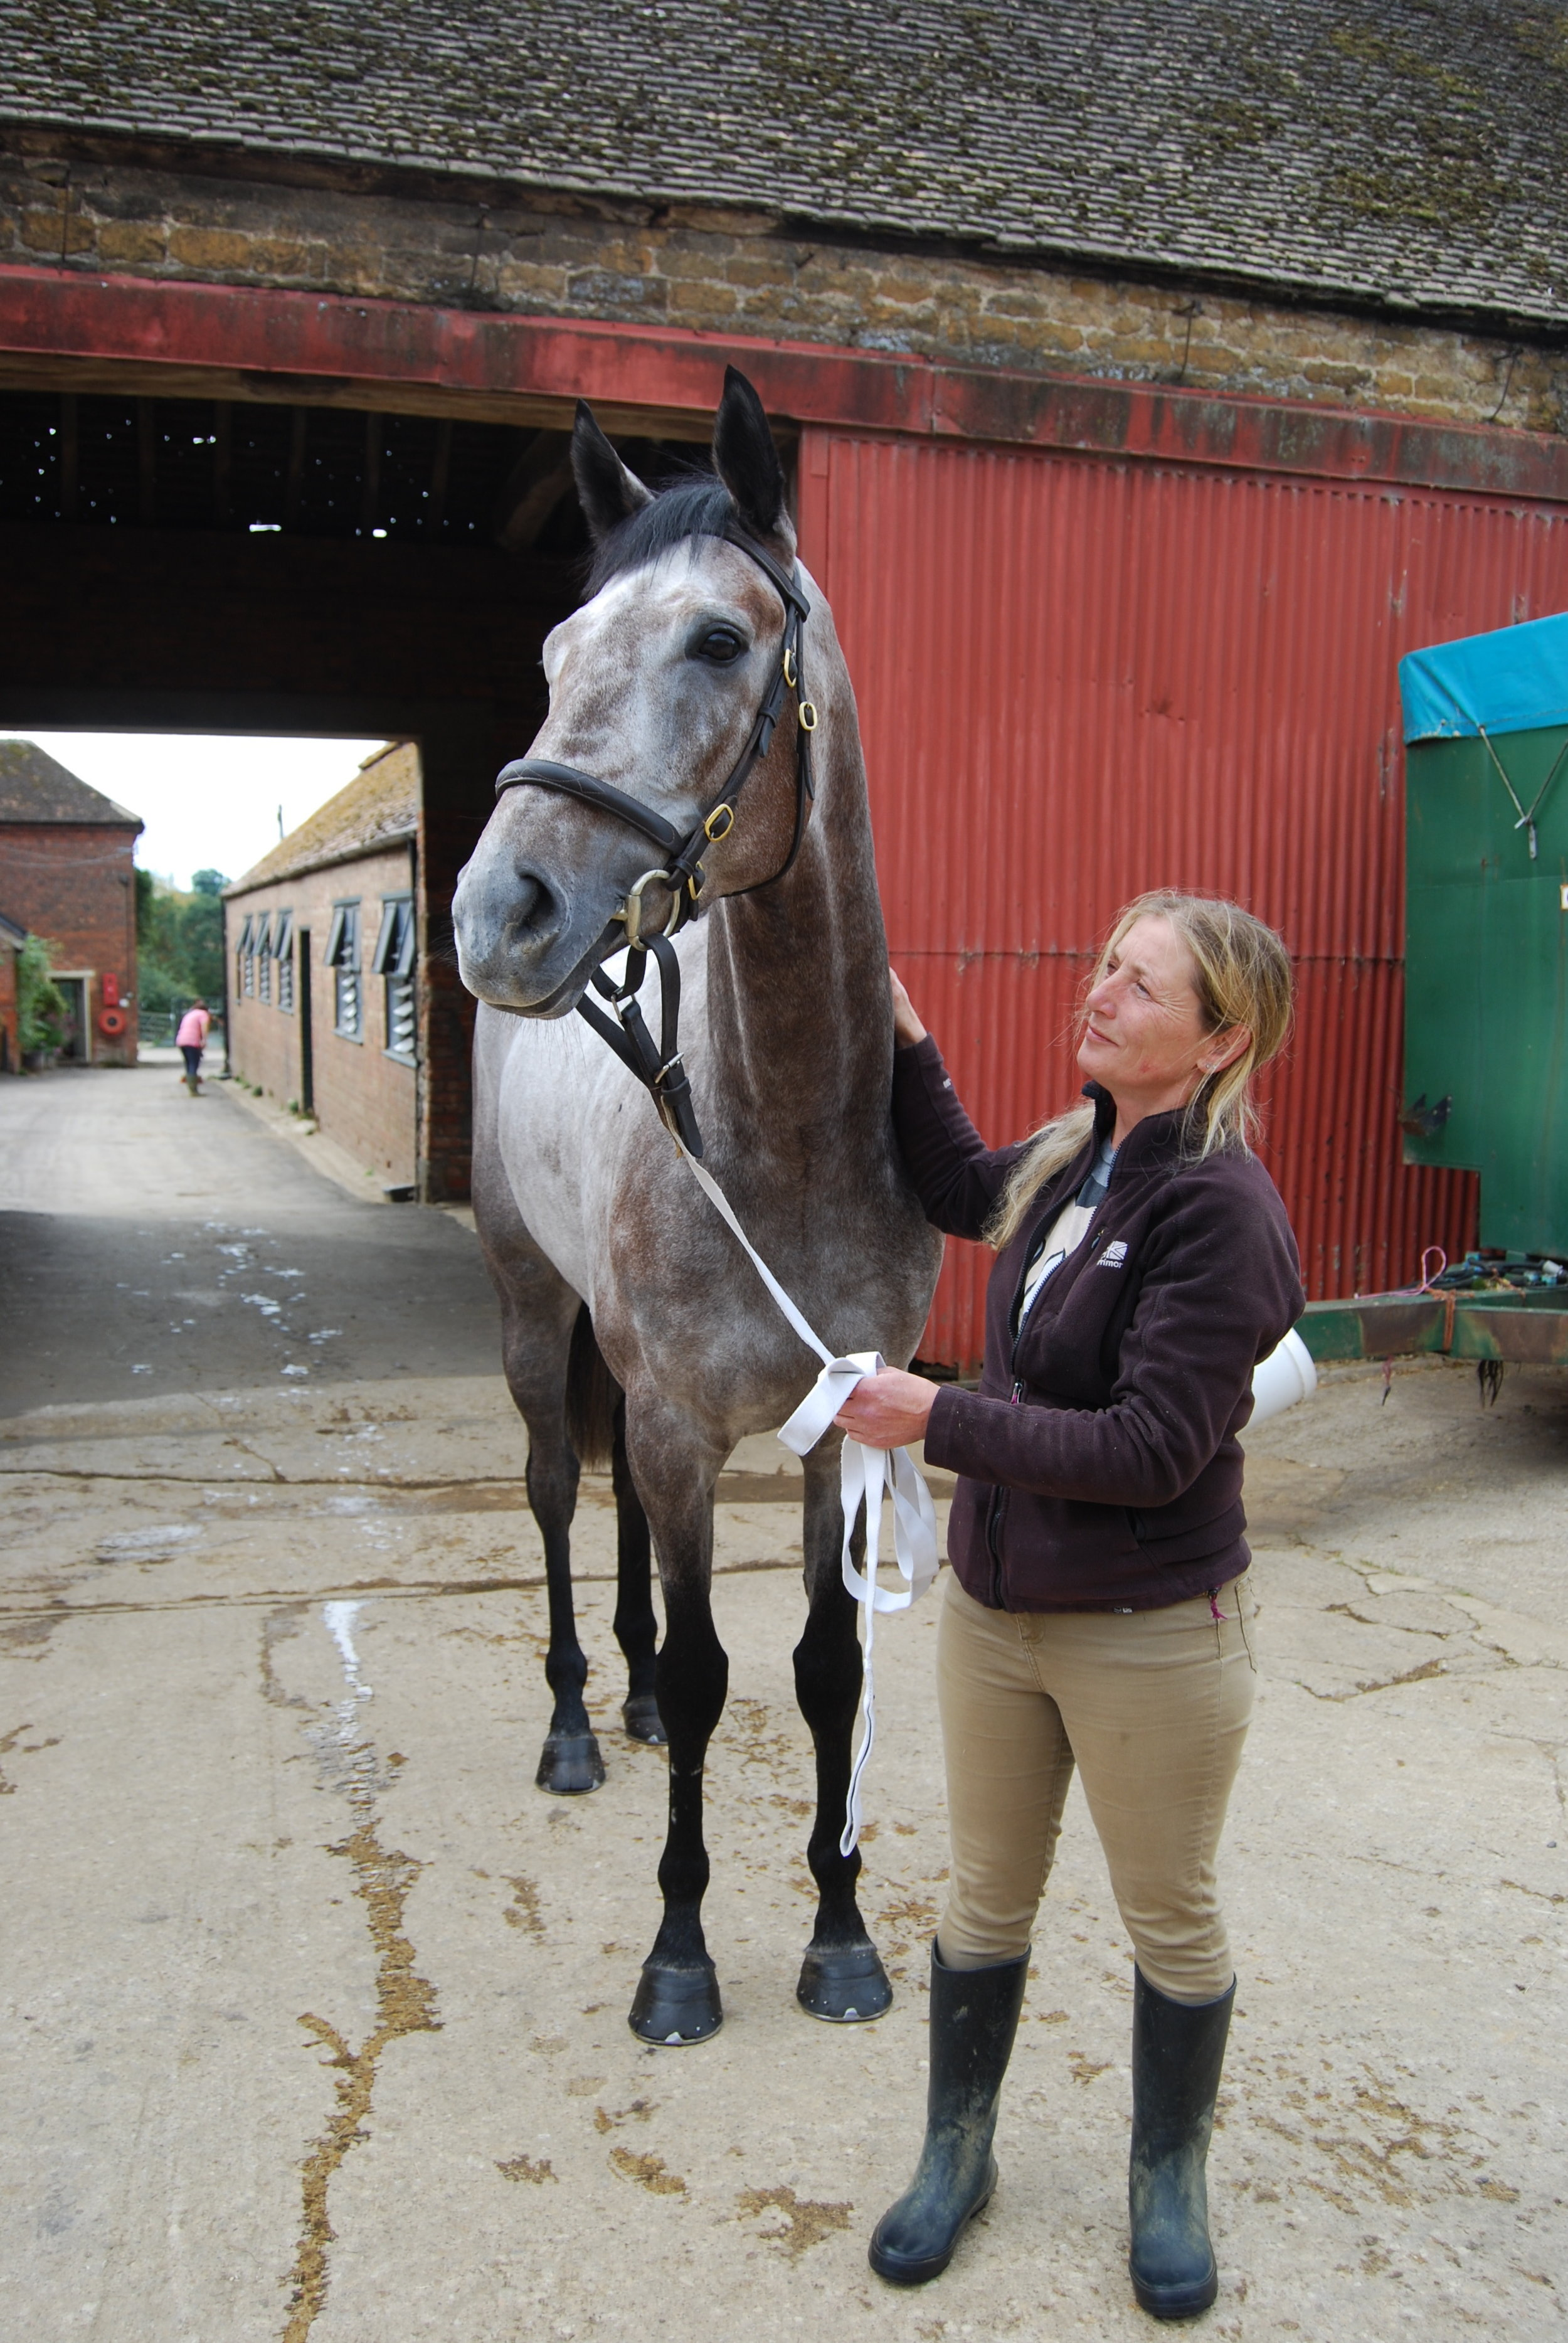 Starjac and Gail outside the stables.